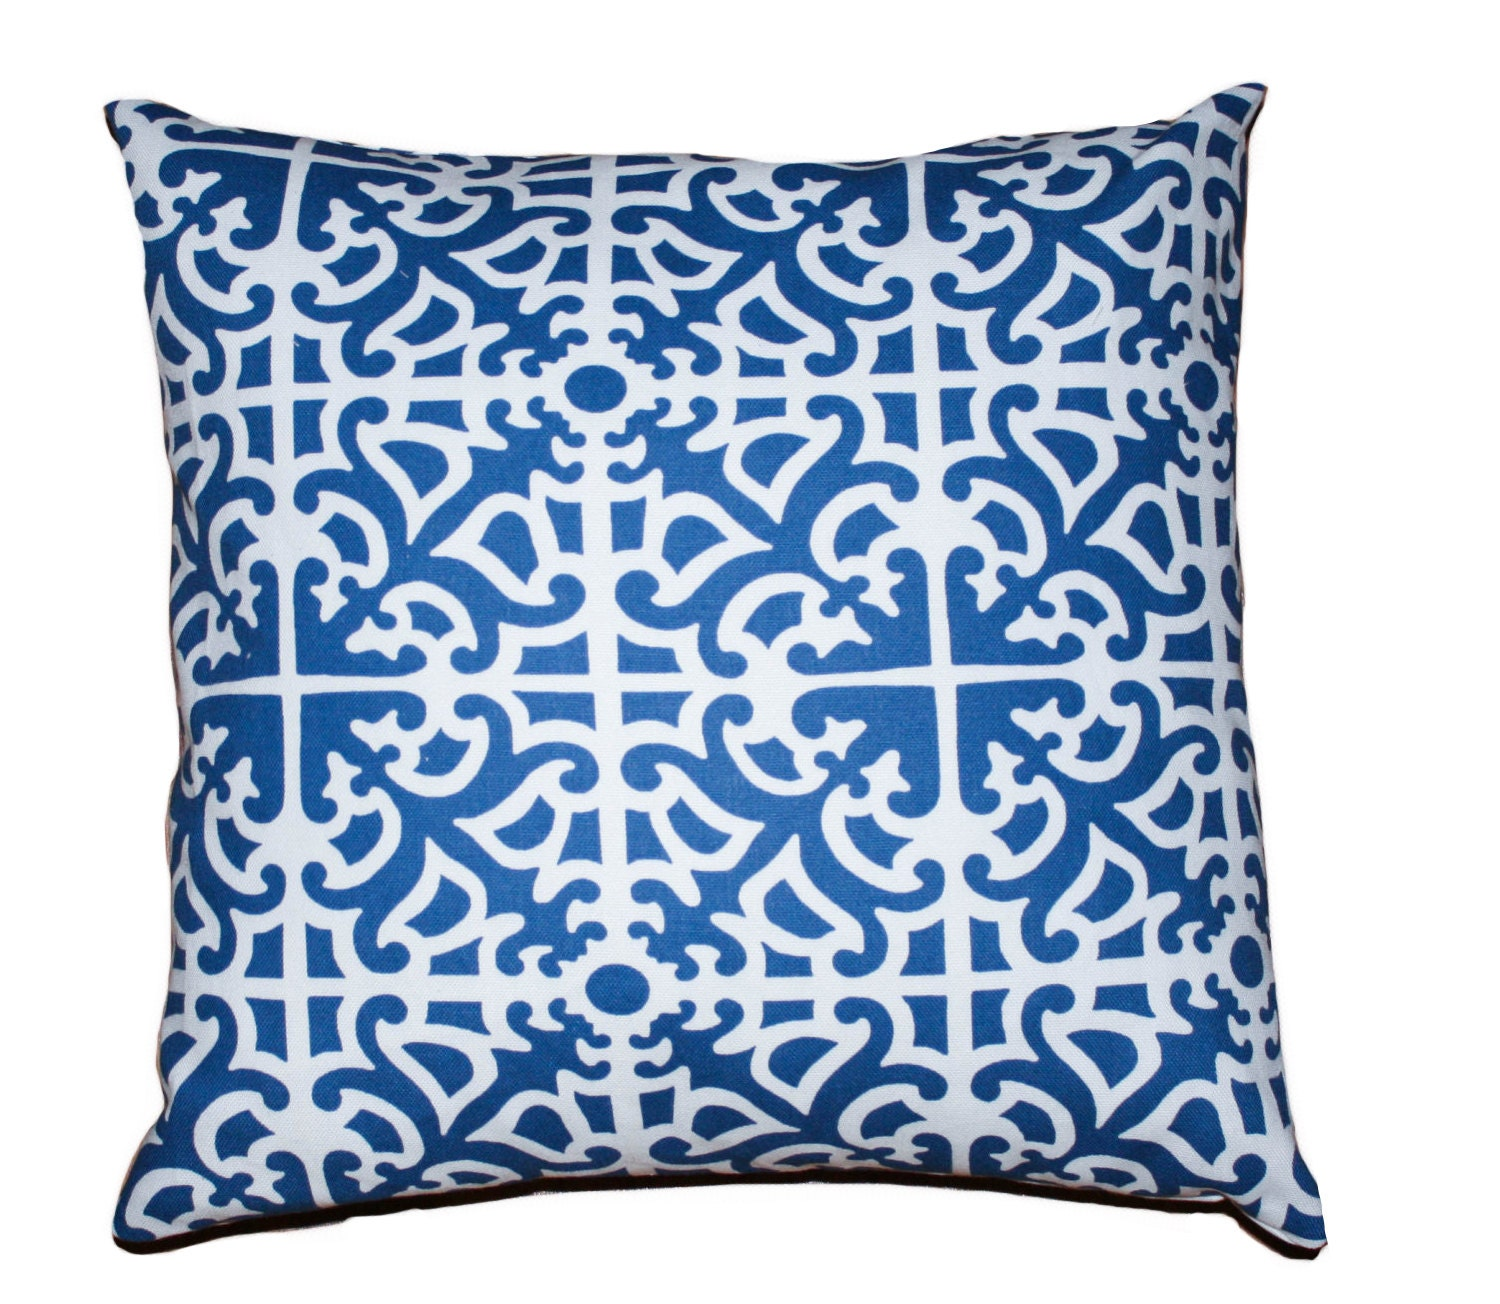 "Blue Pillow Cover Geometric Pattern 16"" x 16"" - Crackerbox"